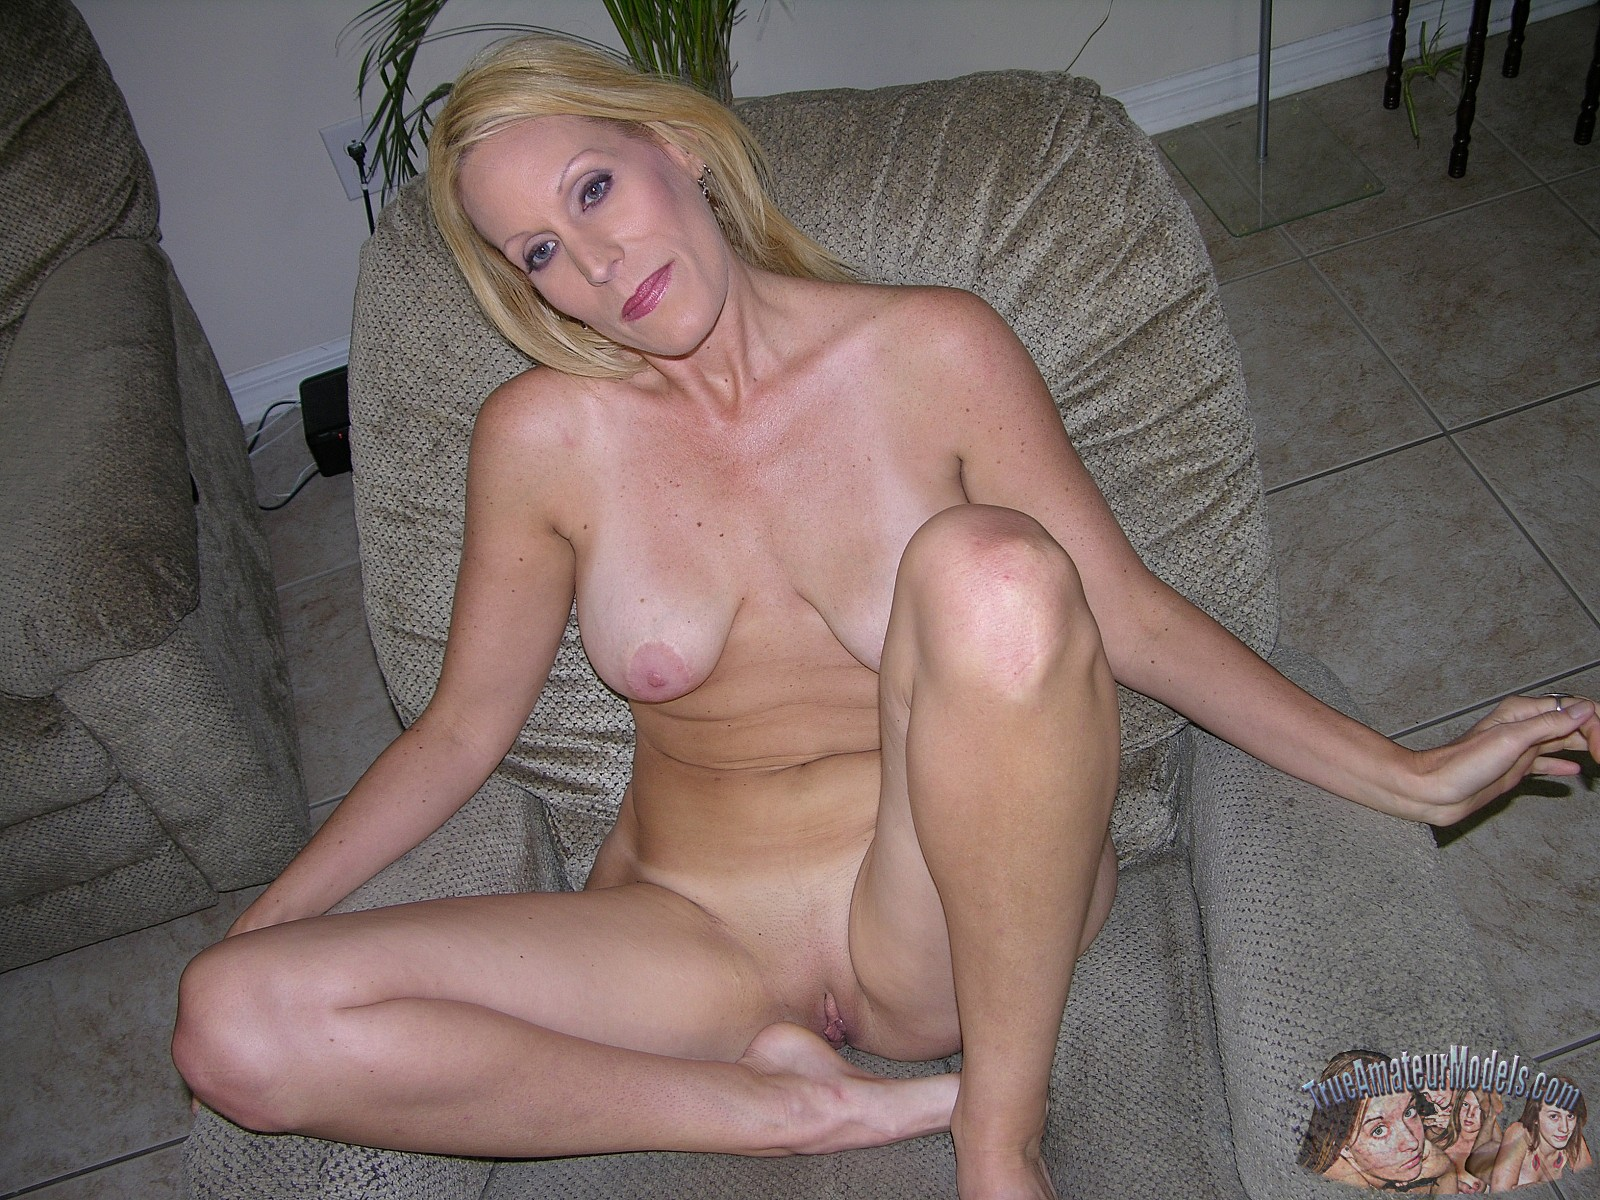 panties pussy young amateur